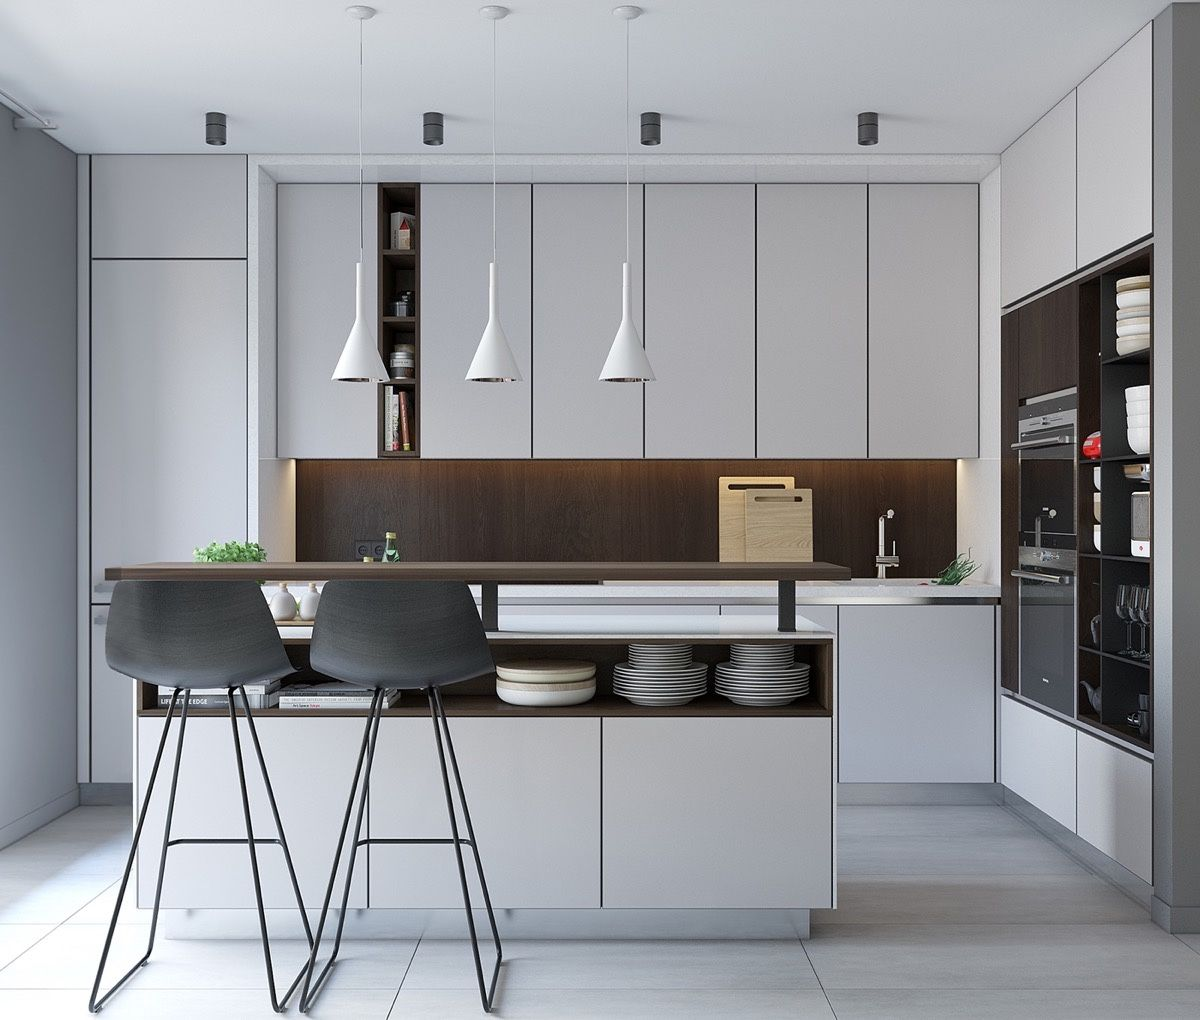 Best 40 Minimalist Kitchens To Get Super Sleek Inspiration 400 x 300